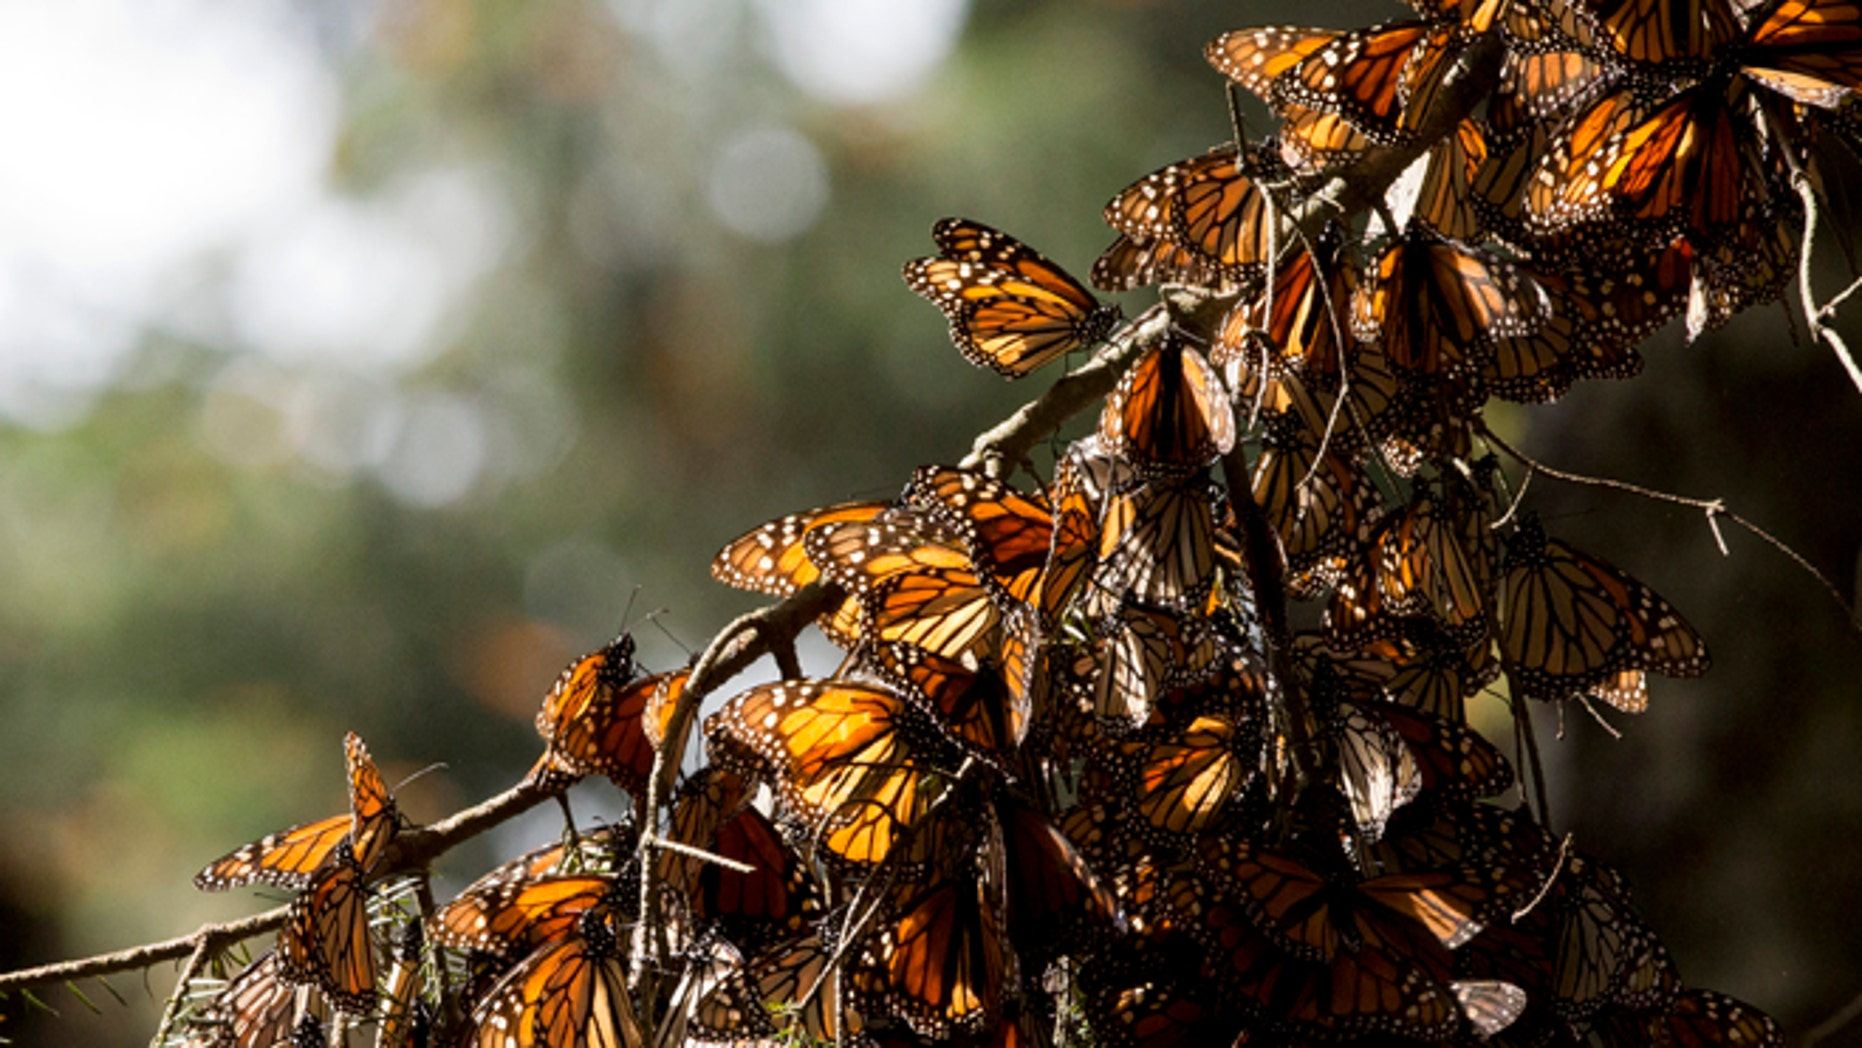 In this Jan. 4, 2015, file photo, a kaleidoscope of Monarch butterflies hang from a tree branch, in the Piedra Herrada sanctuary, near Valle de Bravo, Mexico. A Mexican environmentalist says studies released Friday, Dec. 18, 2015, show illegal loggers clear-cut at least 24 acres (10 hectares) in the monarch butterflies wintering grounds in central Mexico. (AP Photo/Rebecca Blackwell, File)